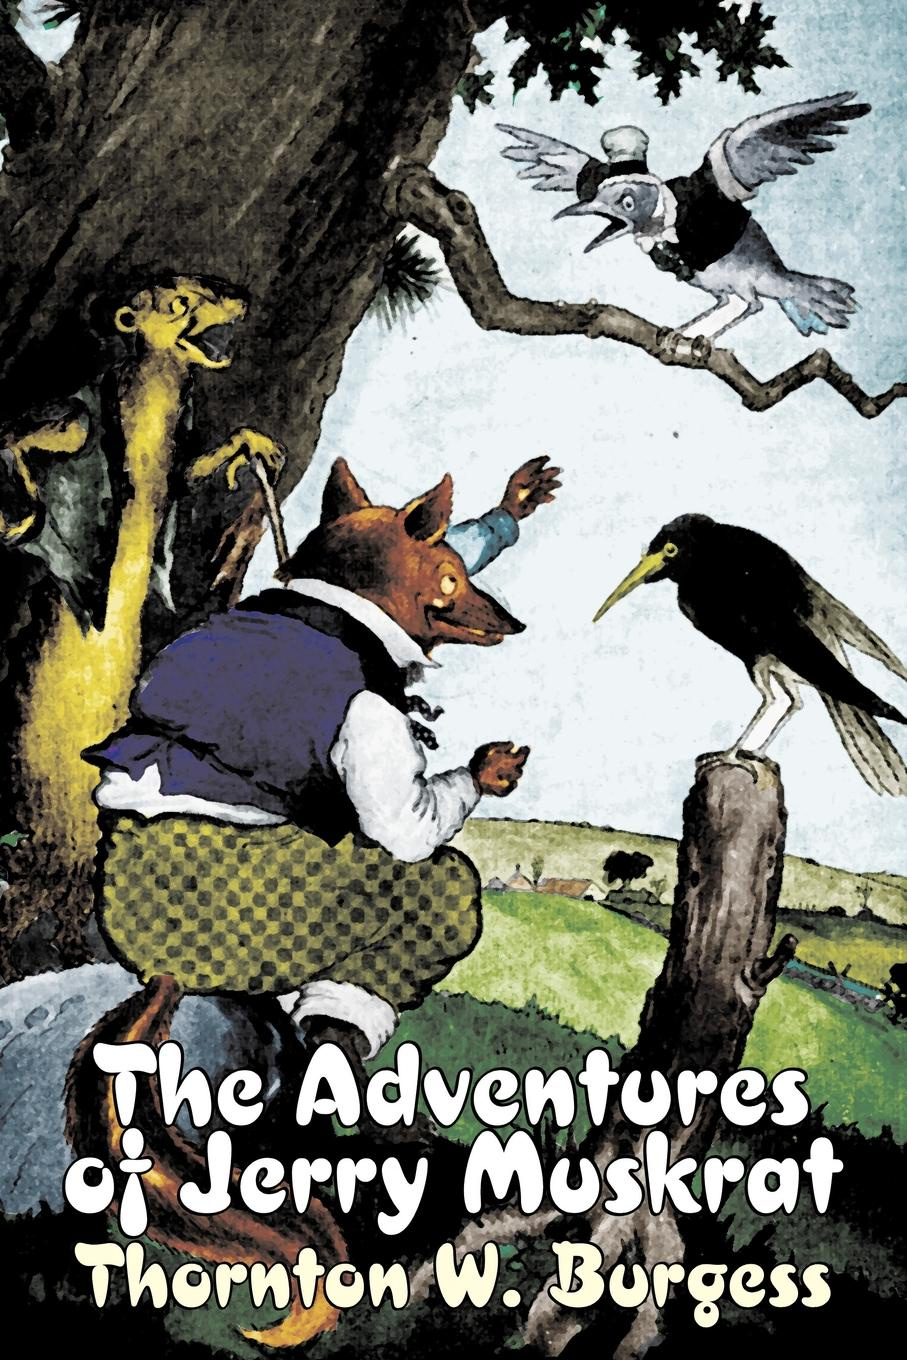 Thornton W. Burgess The Adventures of Jerry Muskrat by Thornton Burgess, Fiction, Animals, Fantasy & Magic